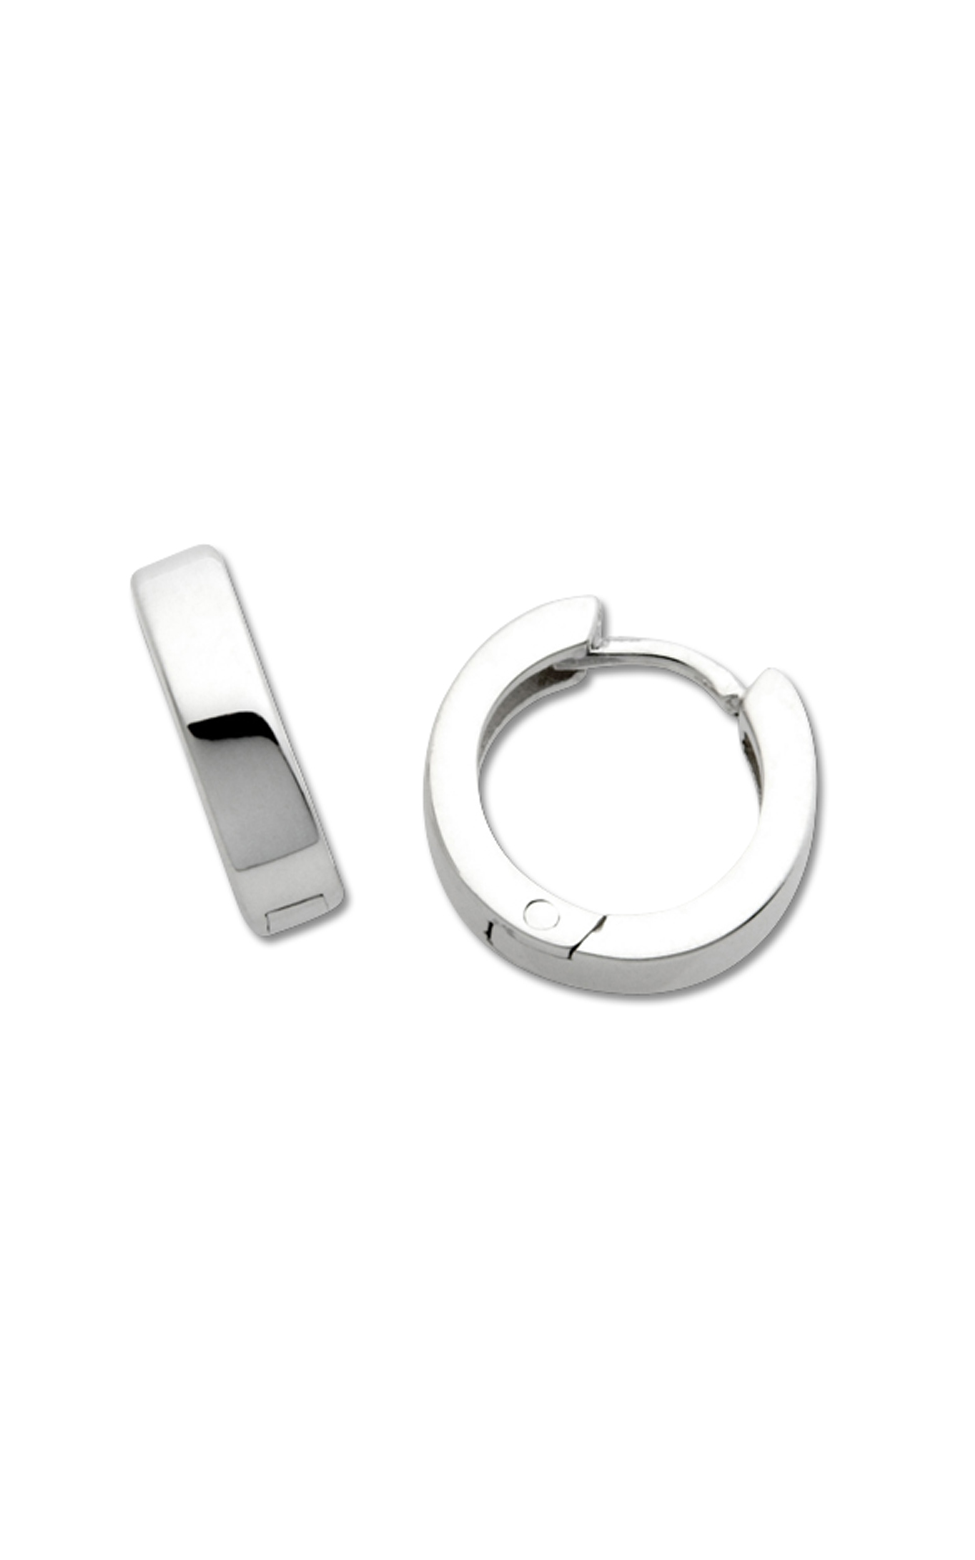 Zina Contemporary Earrings B554 product image